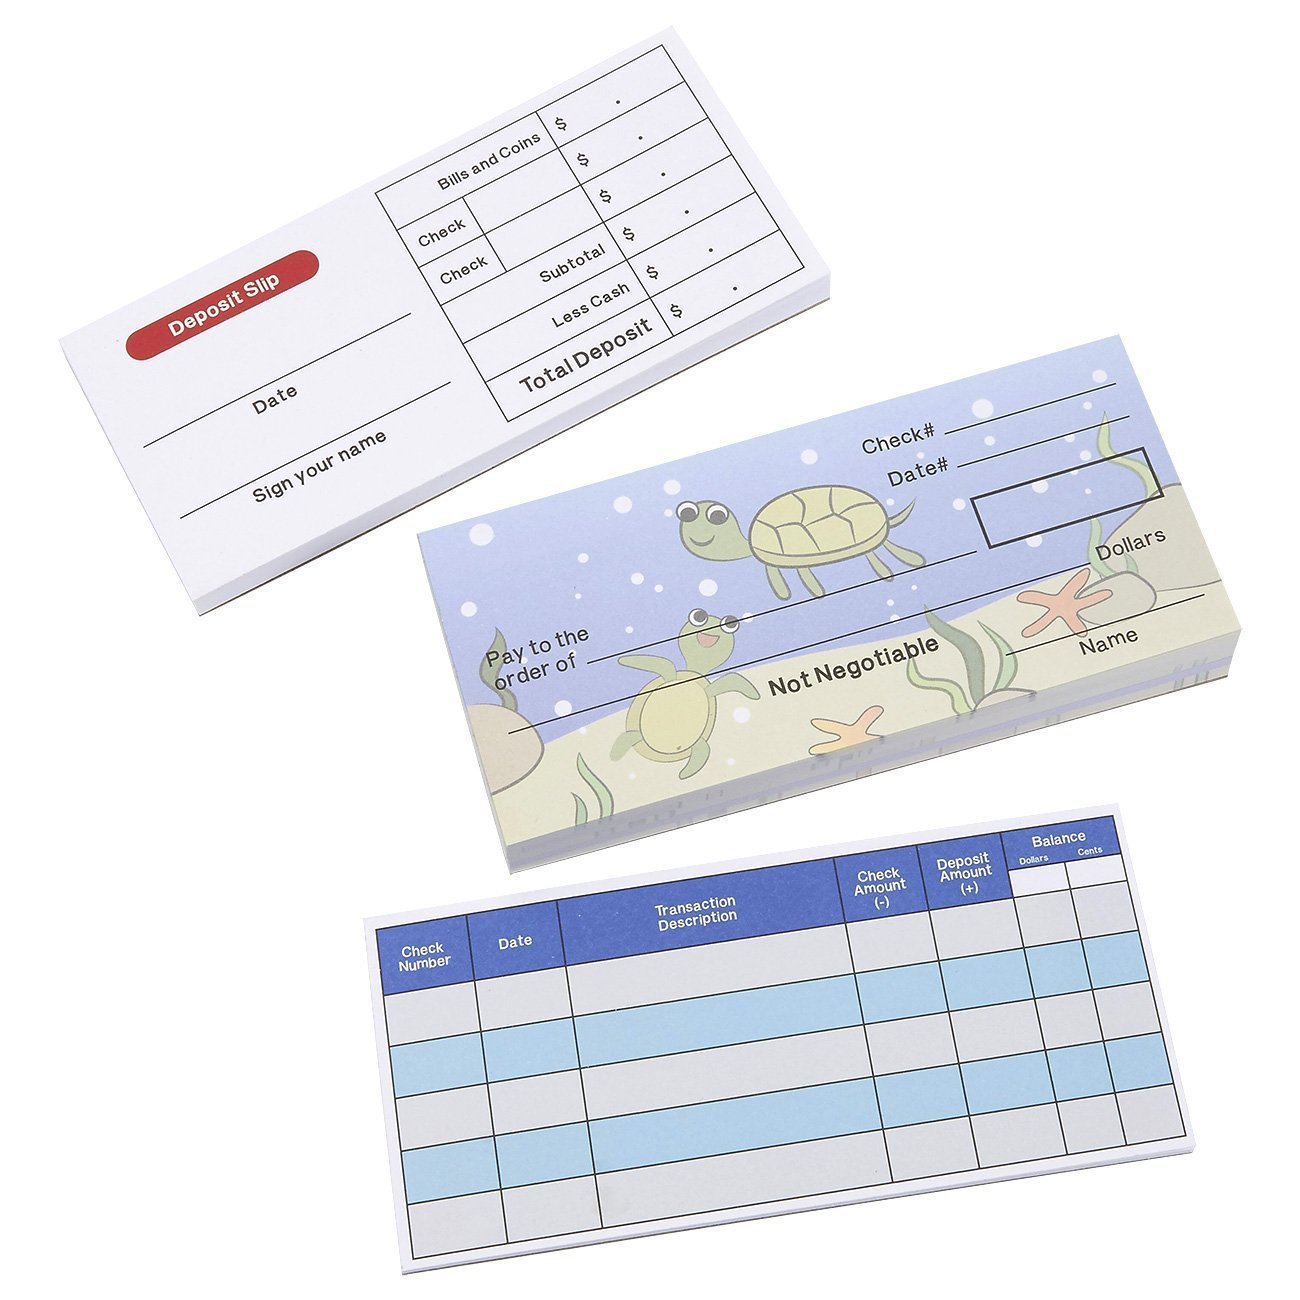 Blue Panda Play Check Set Educational Toy for Kids Promotes Financial Literacy Includes Checkbook Deposit Slip Check Register 150 Sheets Total Underwater Theme